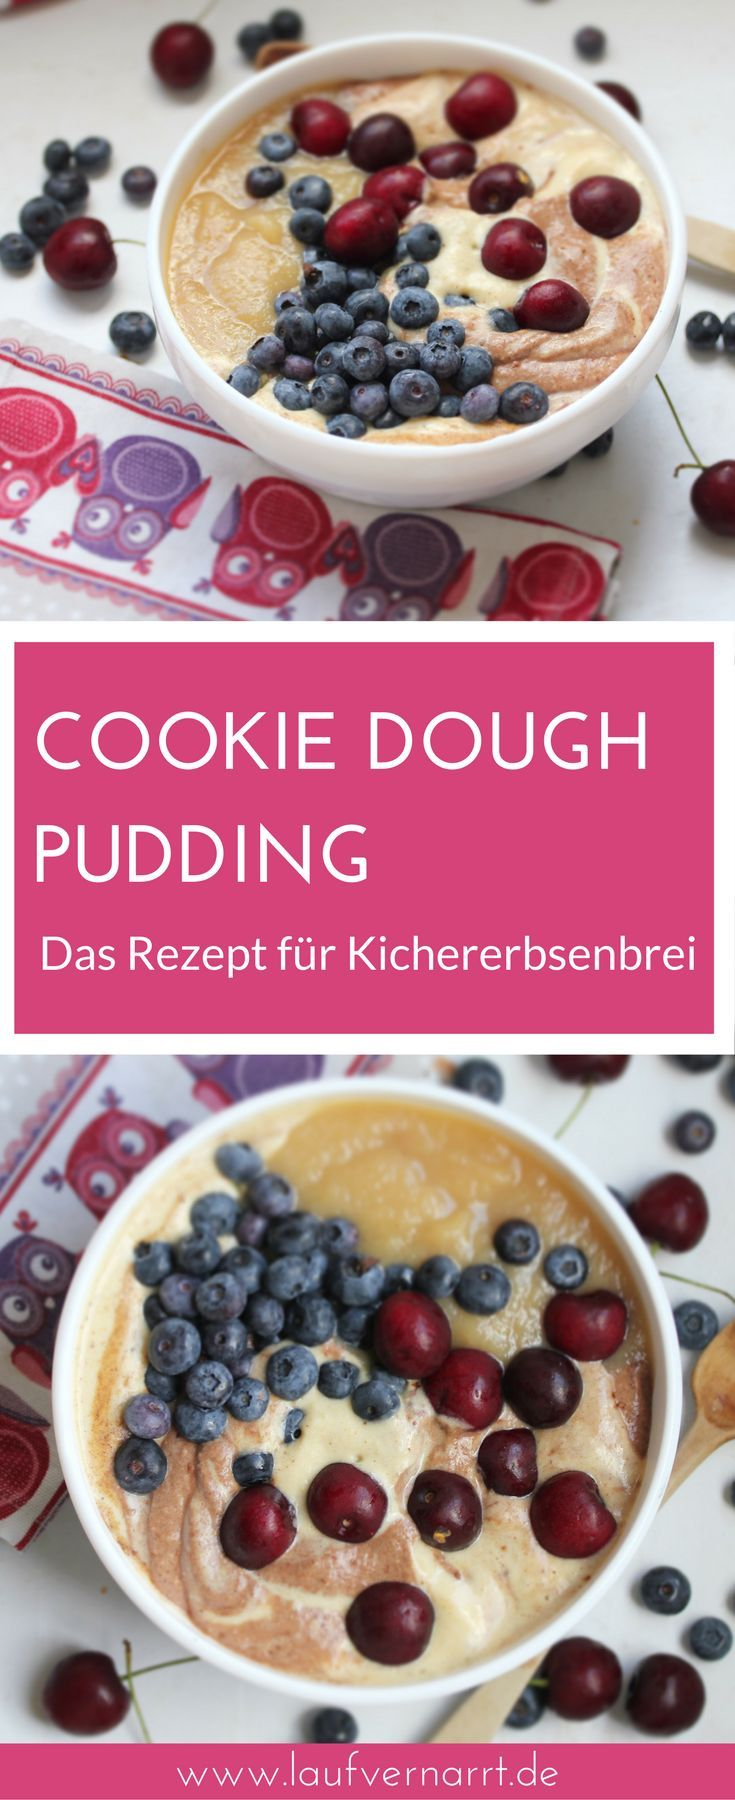 cookie dough pudding s er kichererbsenbrei fr hst ck rezepte deutsch pinterest gesunde. Black Bedroom Furniture Sets. Home Design Ideas